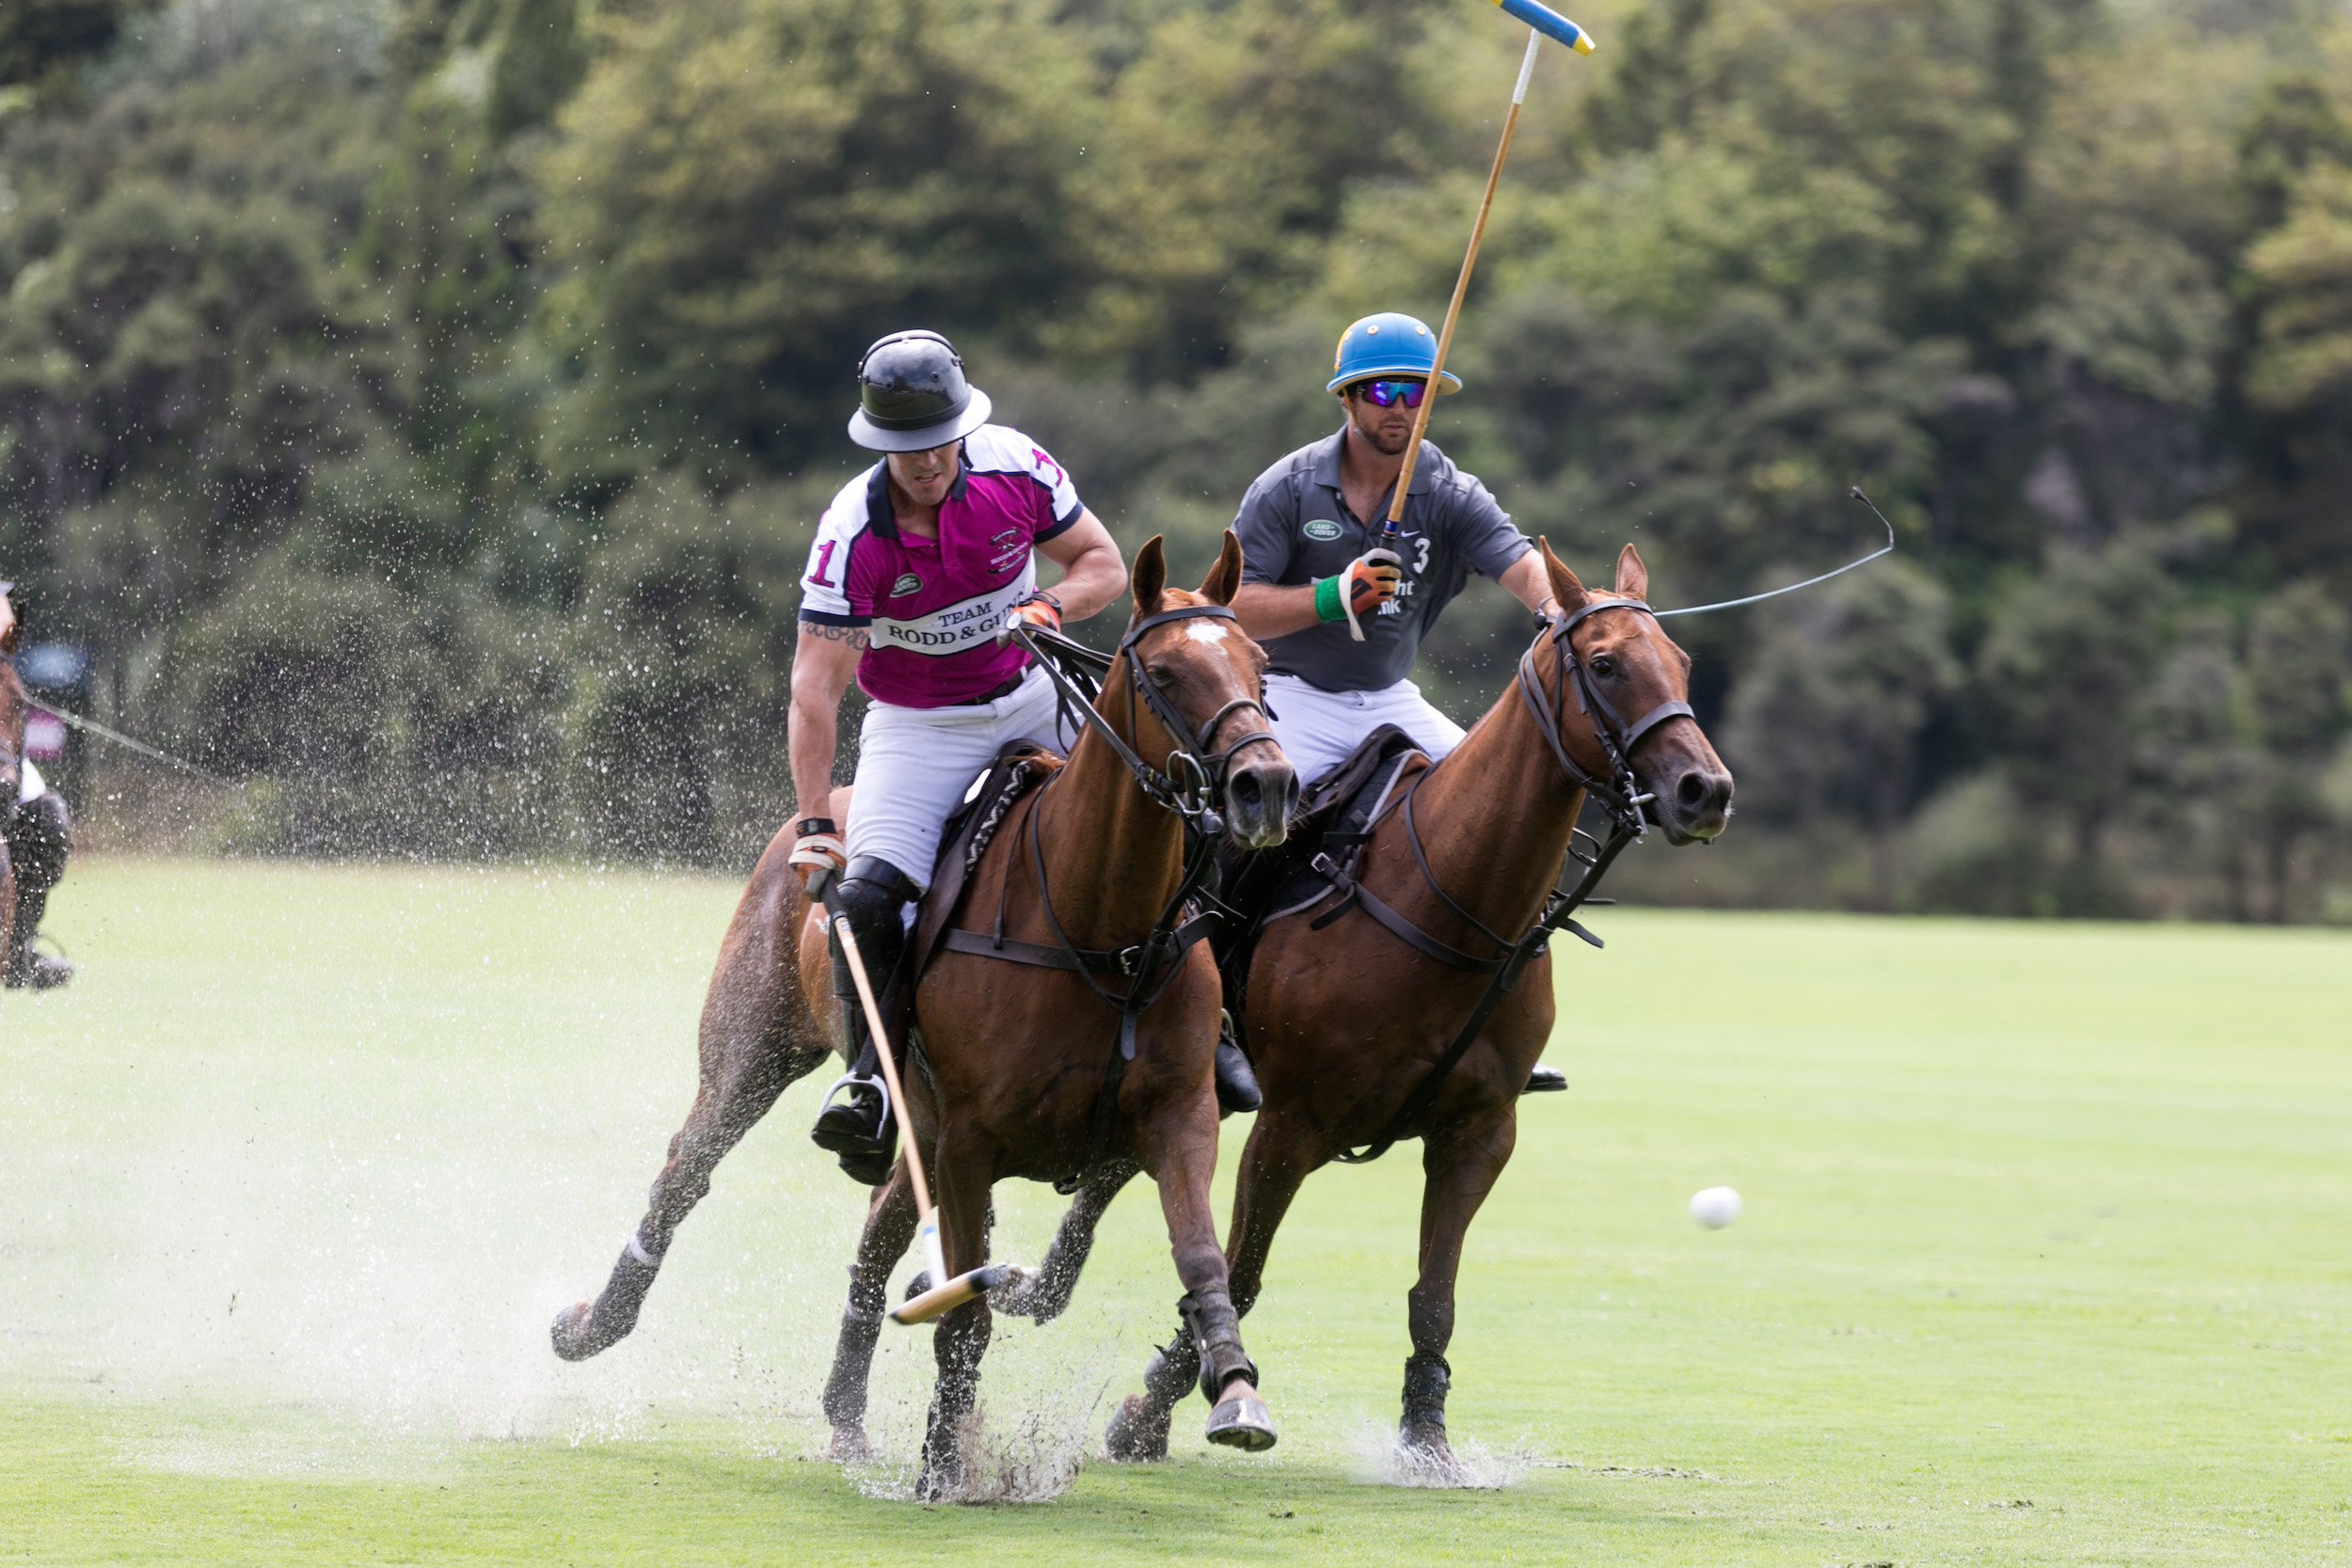 Two men on horses playing polo on a waterlogged pitch